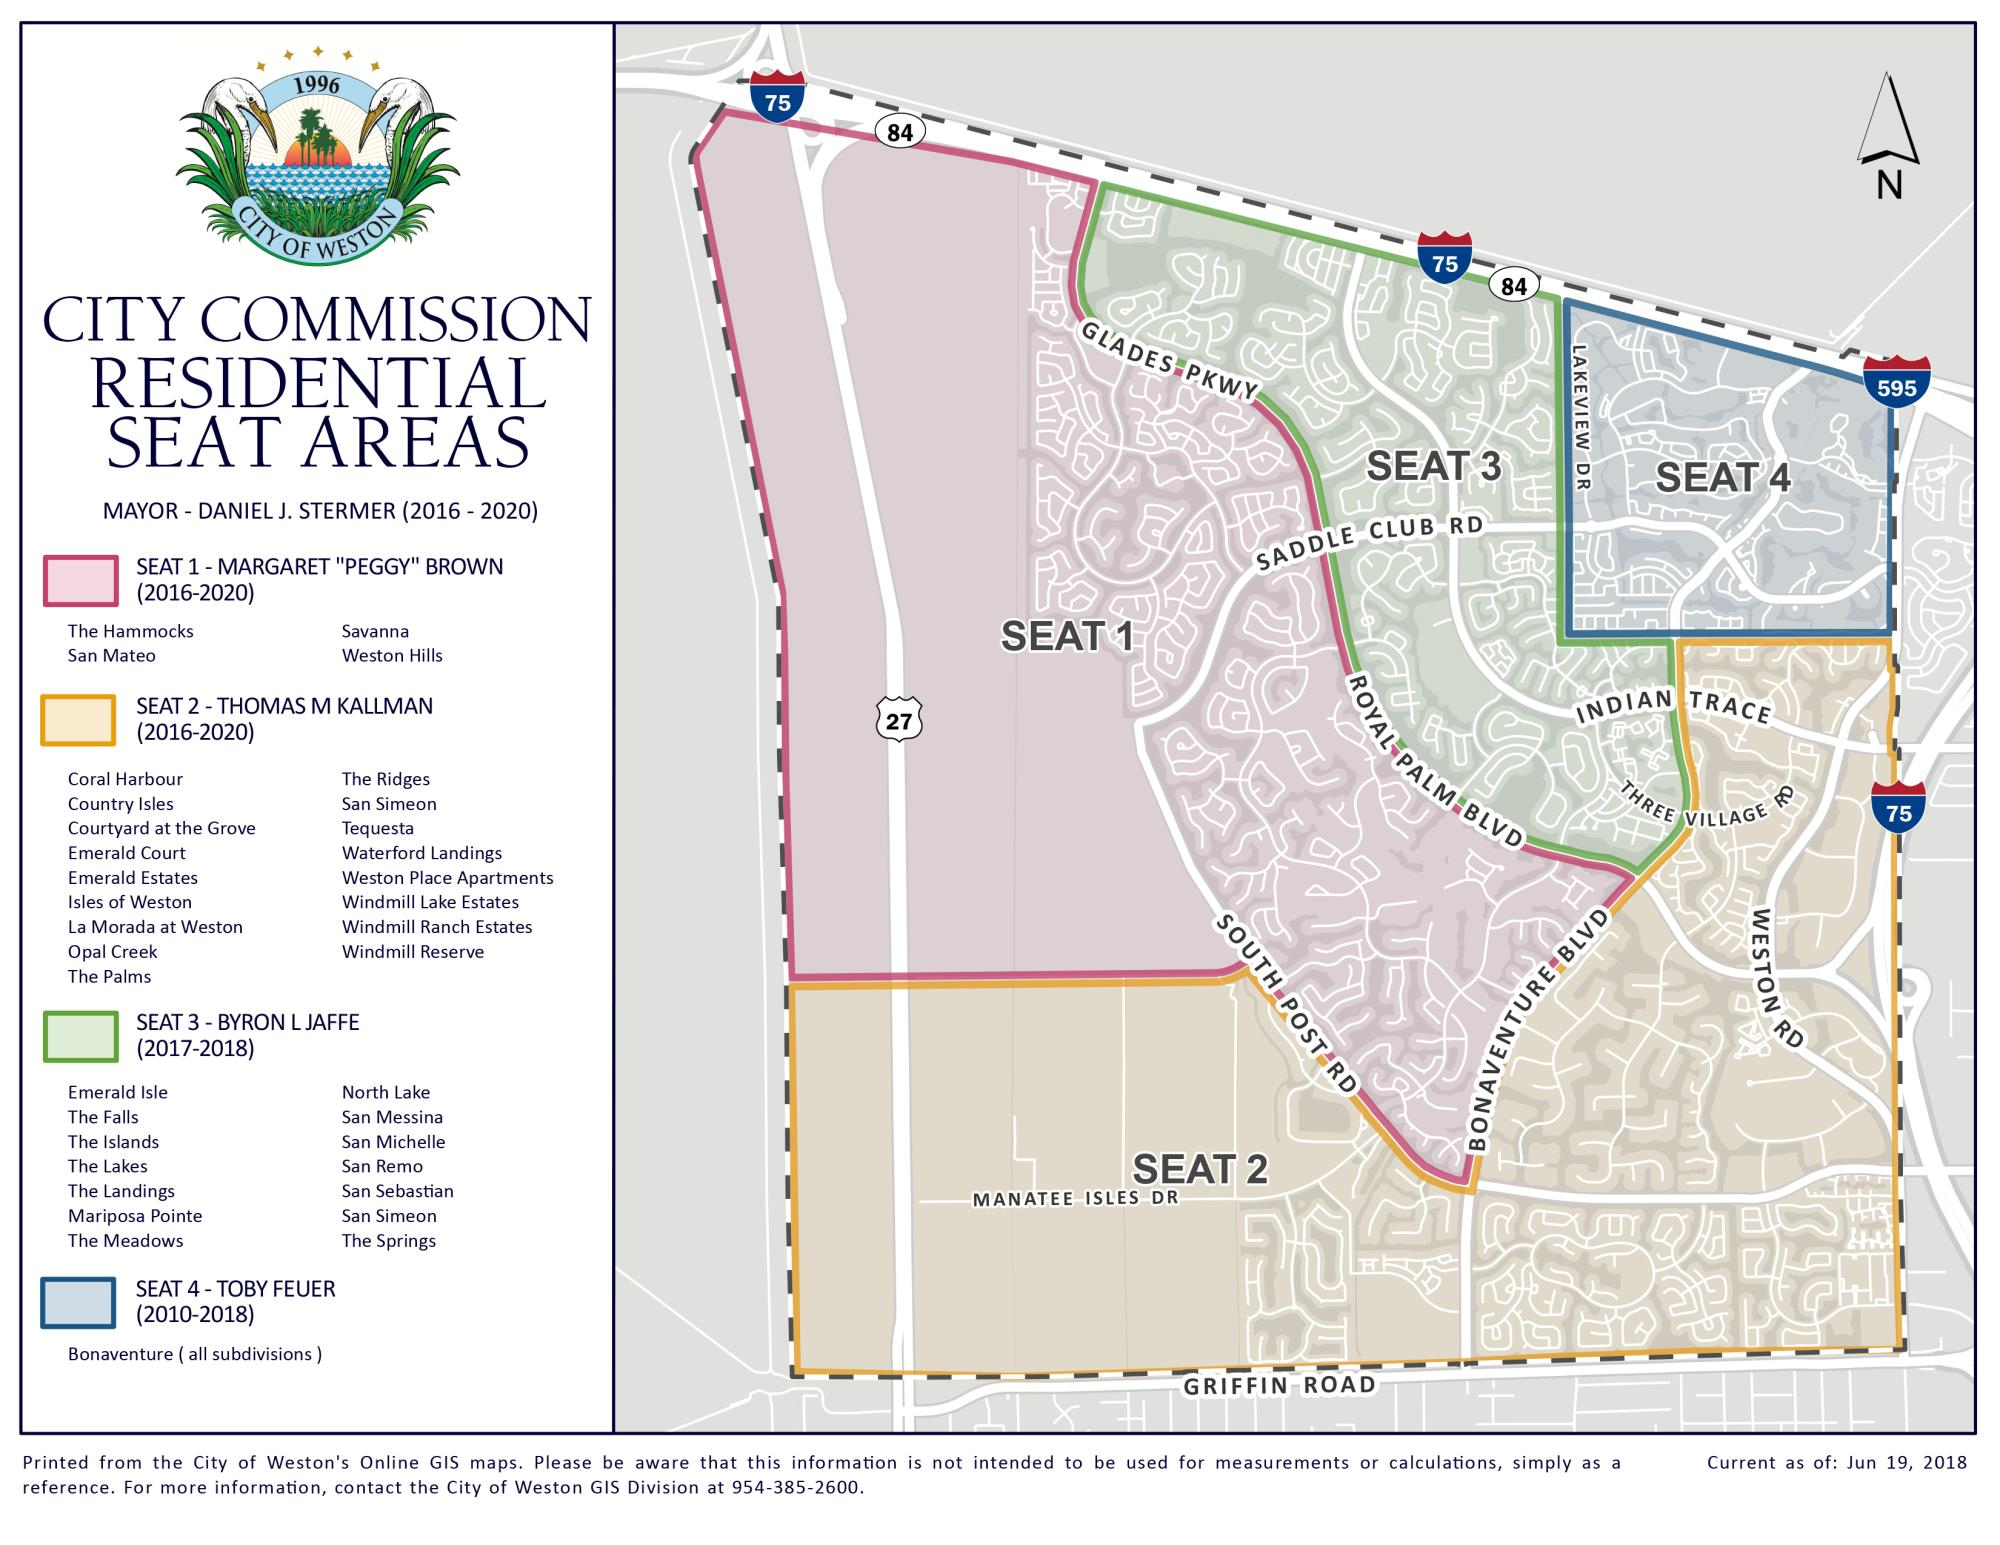 City Commission Residential Seat Areas Map